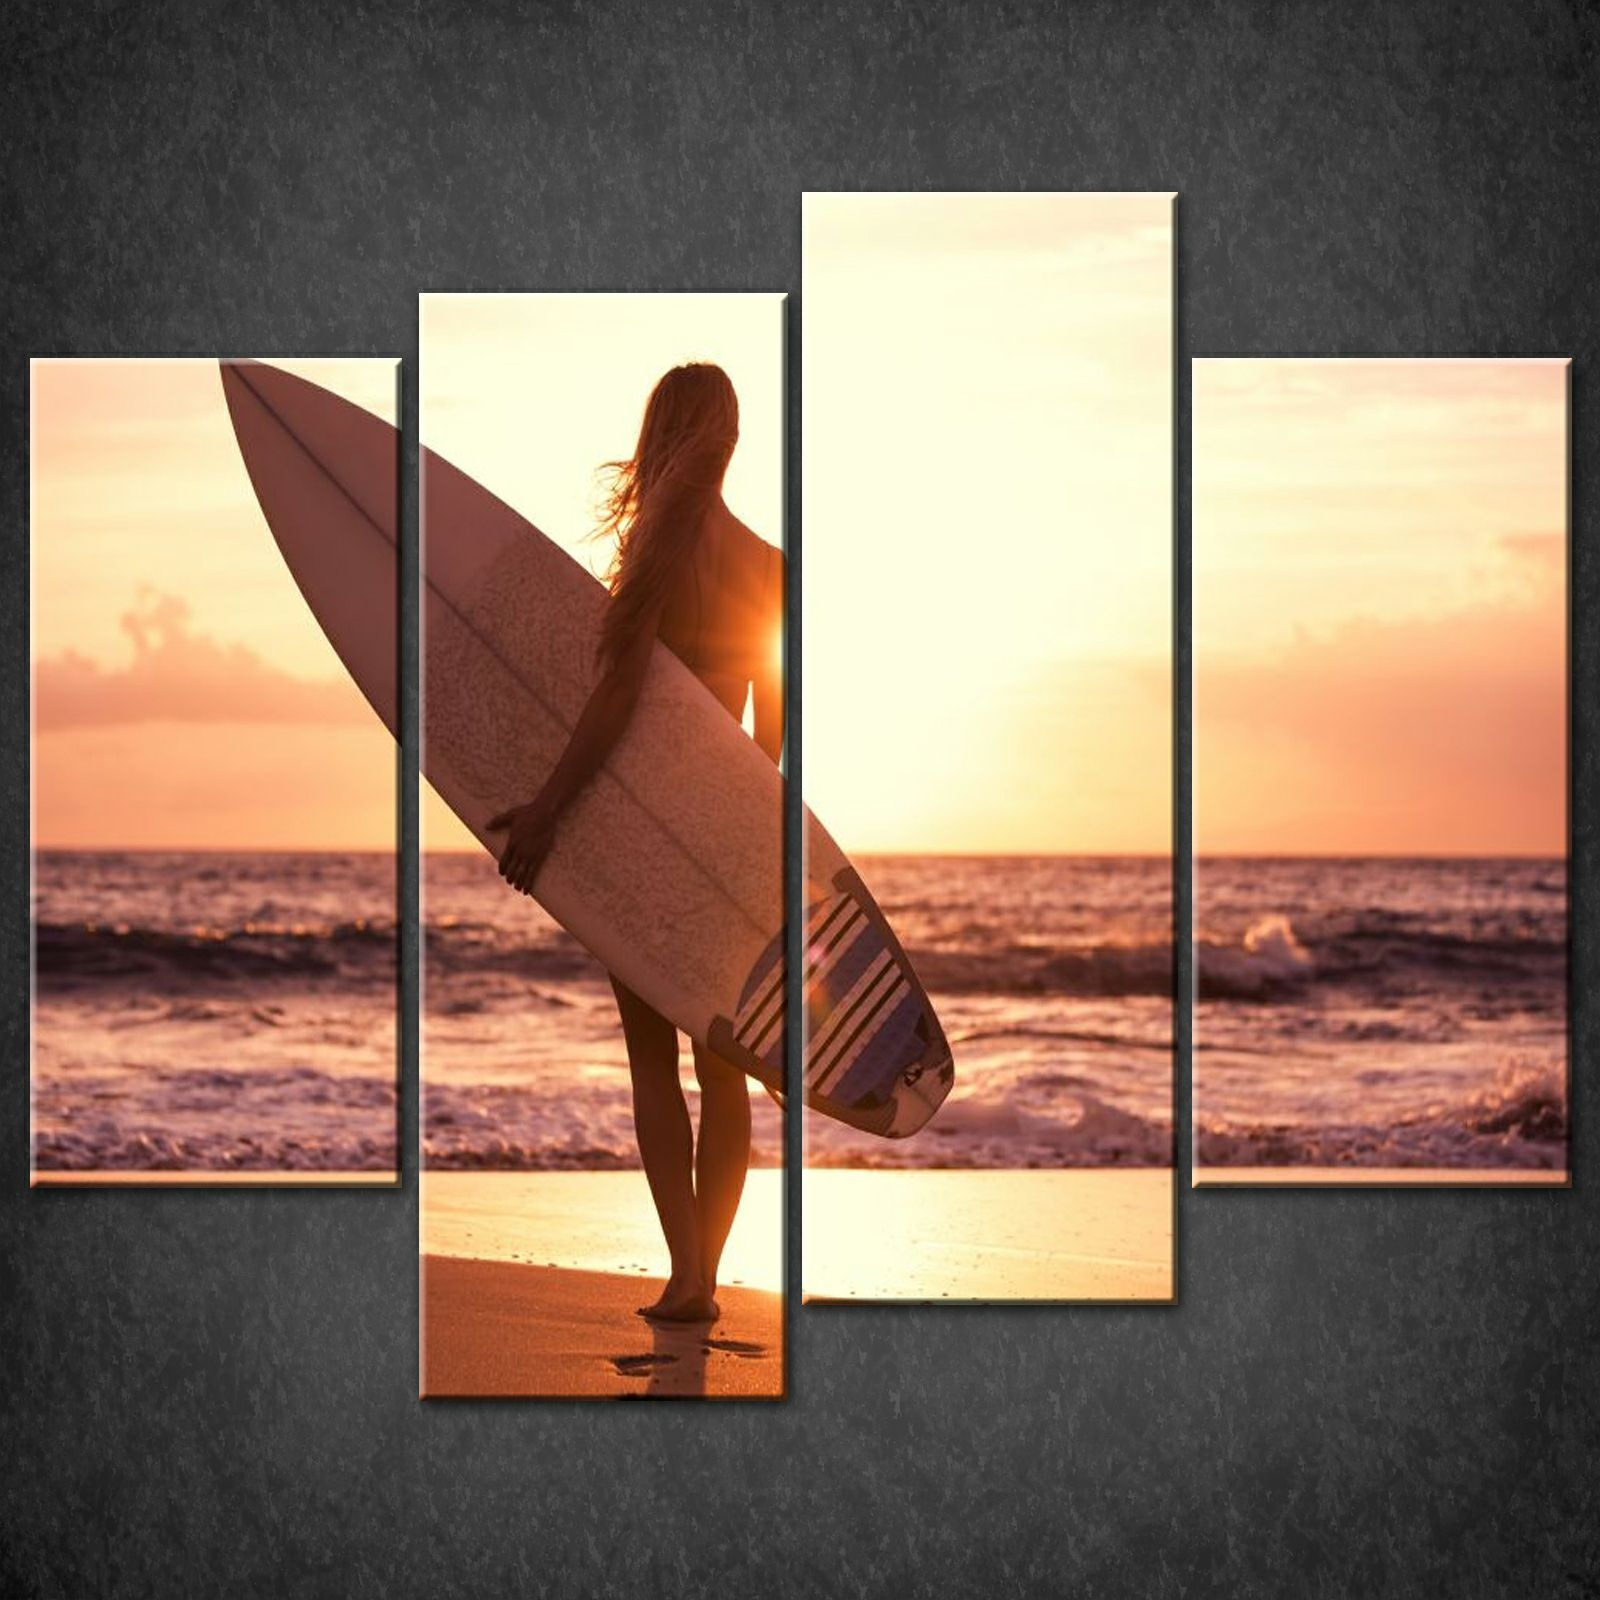 SURFER-GIRL-SPLIT-CANVAS-WALL-ART-PICTURES-PRINTS-LARGER-SIZES-AVAILABLE-111516814074